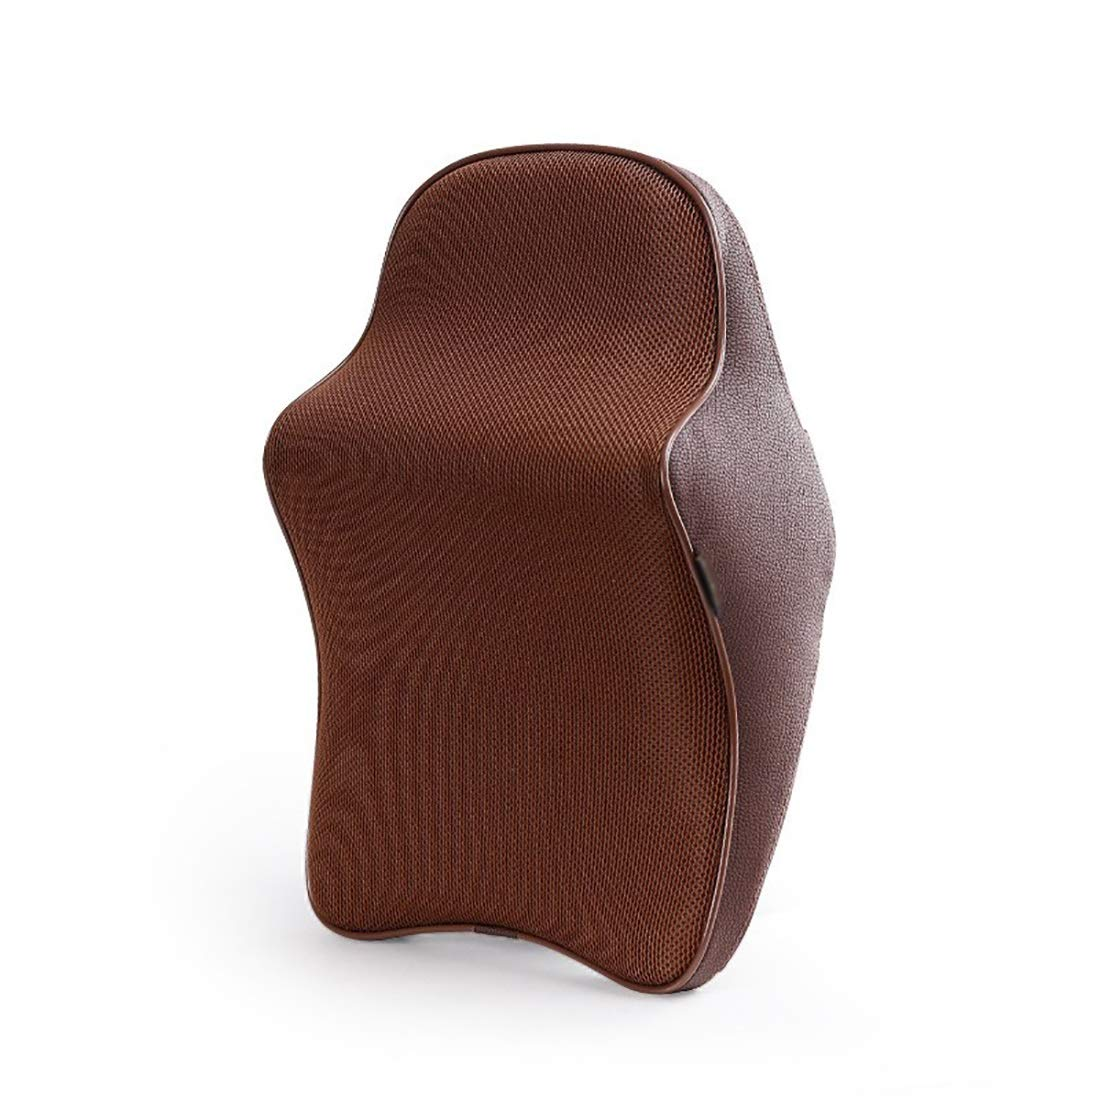 Casa perfecta Perfect House Seat Neck Pillow, car seat Ergonomic Cervical Spine Support Pillow, Long-Lasting Deformation, Breathable Memory Cotton. (Color : Coffee Color) by Casa perfecta